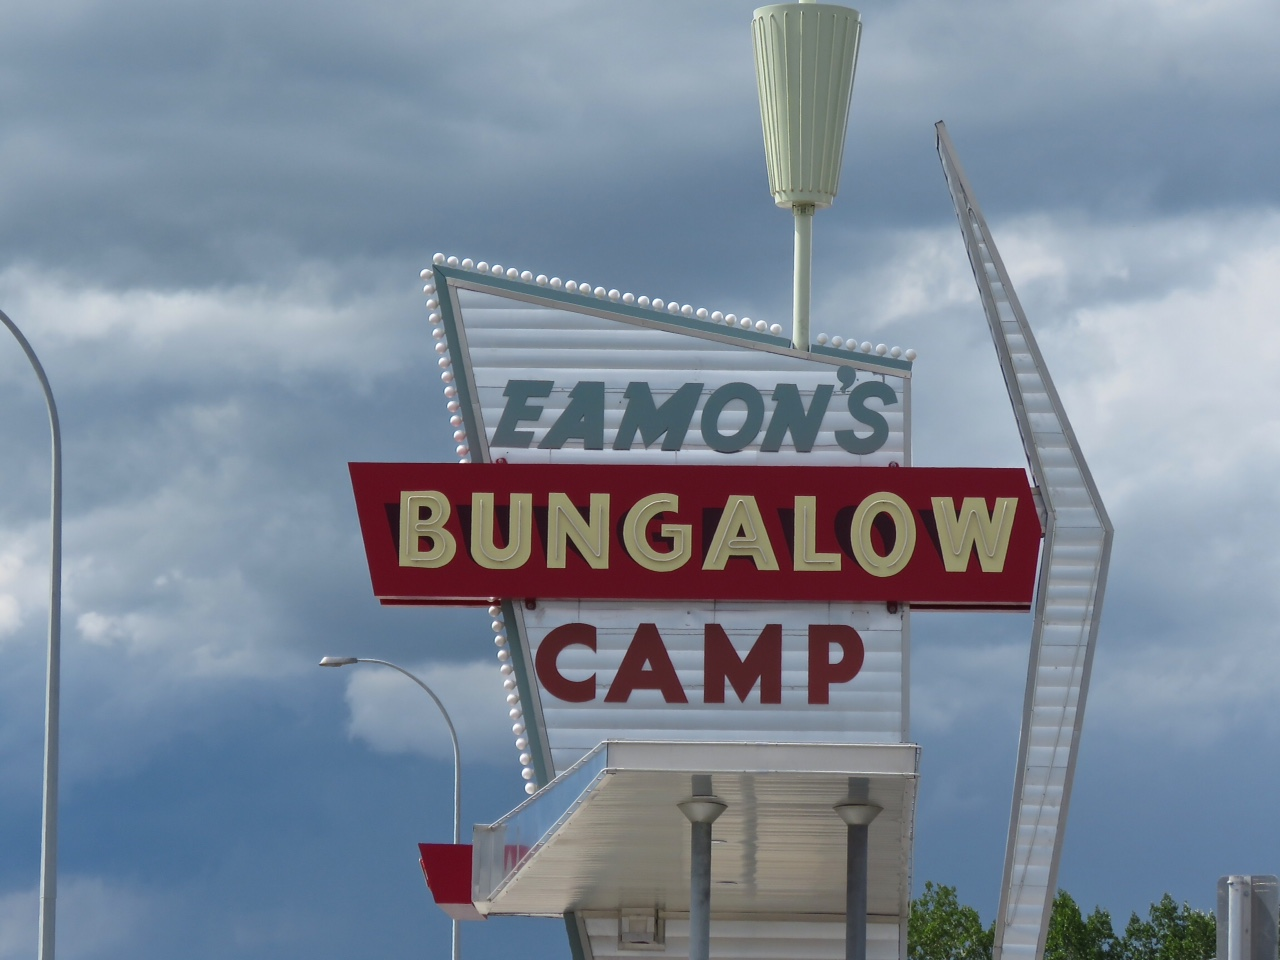 Eamon's Bungalow Camp built in the 1950s and was an icon for people travelling in and out of Calgary for decades. For the complete story click here:   Avenue Magazine: The Story of Eamon's Camp